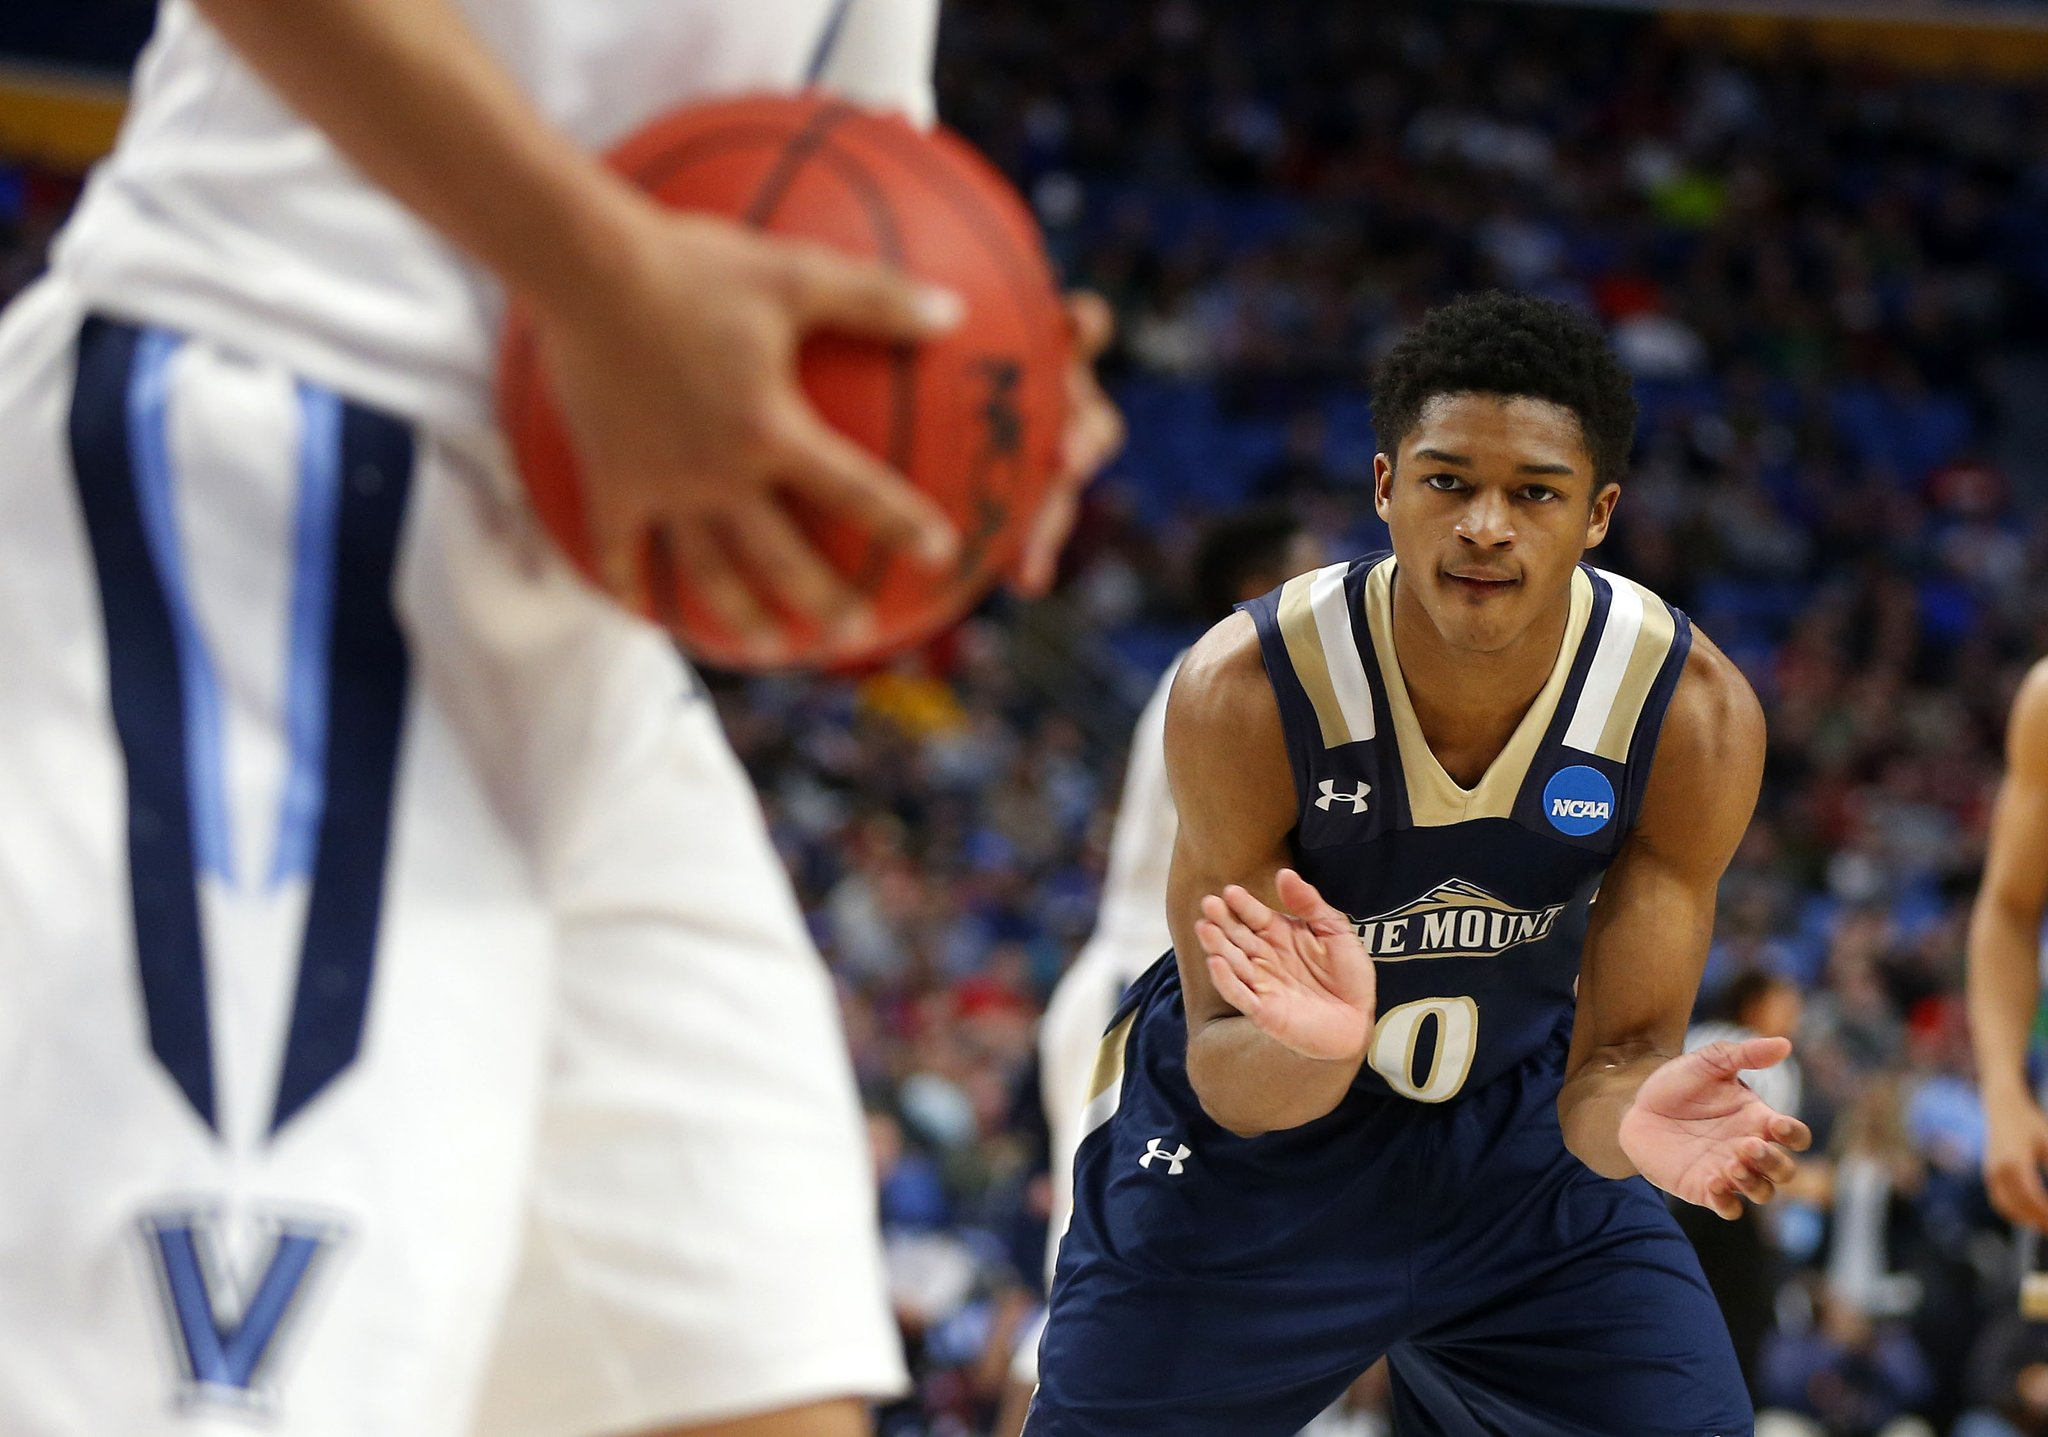 Junior Robinson and Mount St. Mary's couldn't upset top-ranked Villanova. (Mark Mulville/Buffalo News)